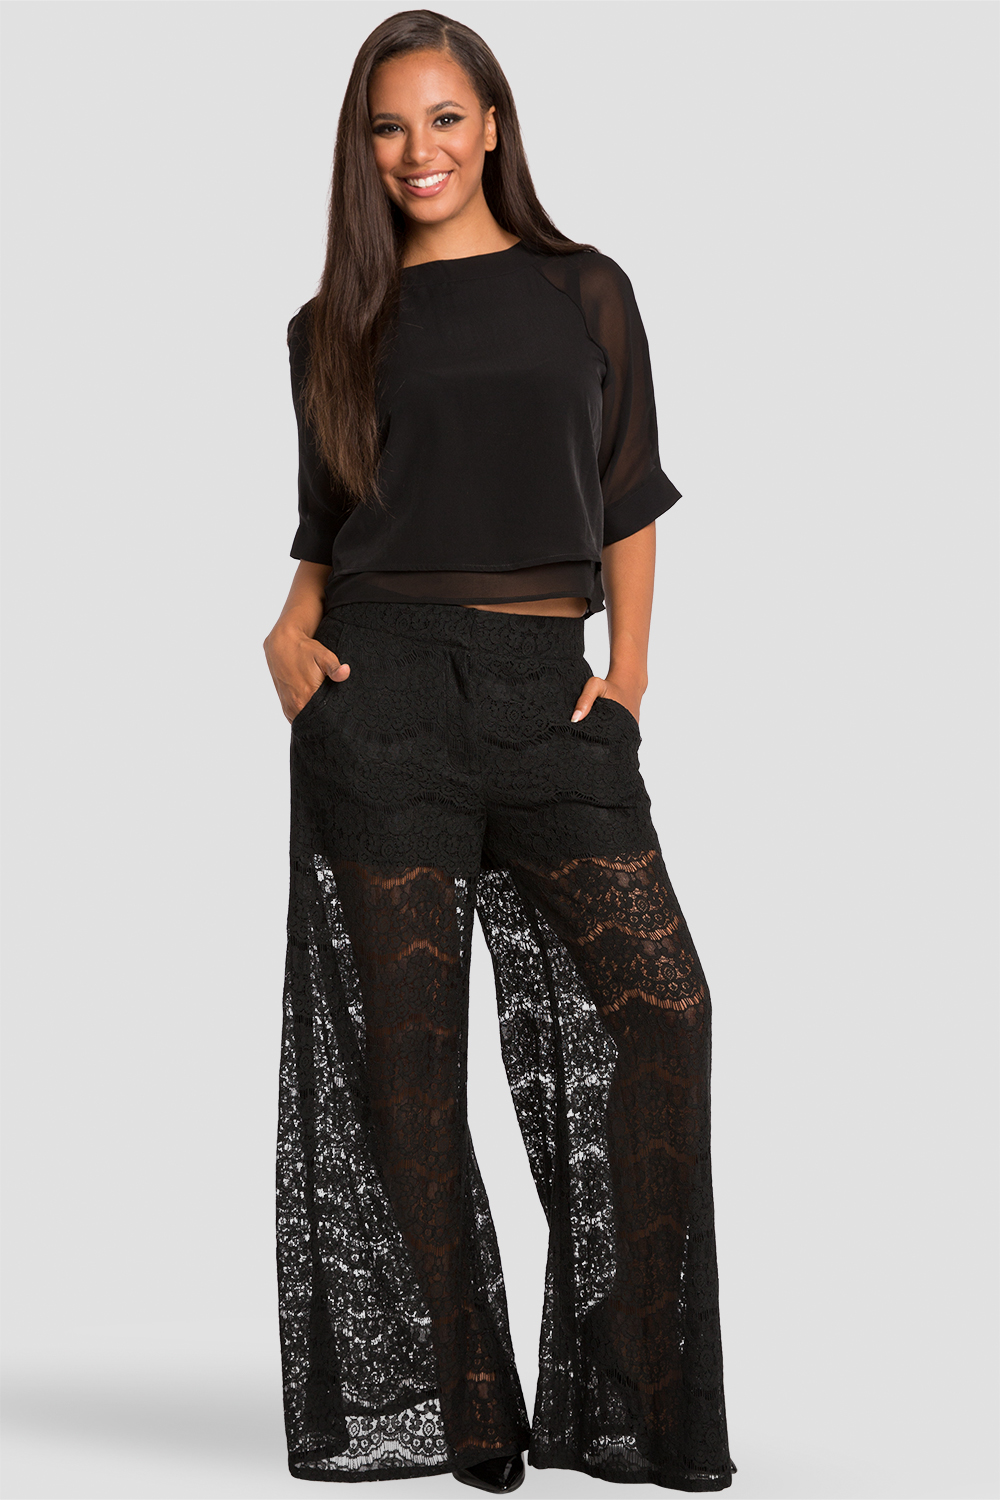 Sheer Layered Black Chiffon Skimmer Top